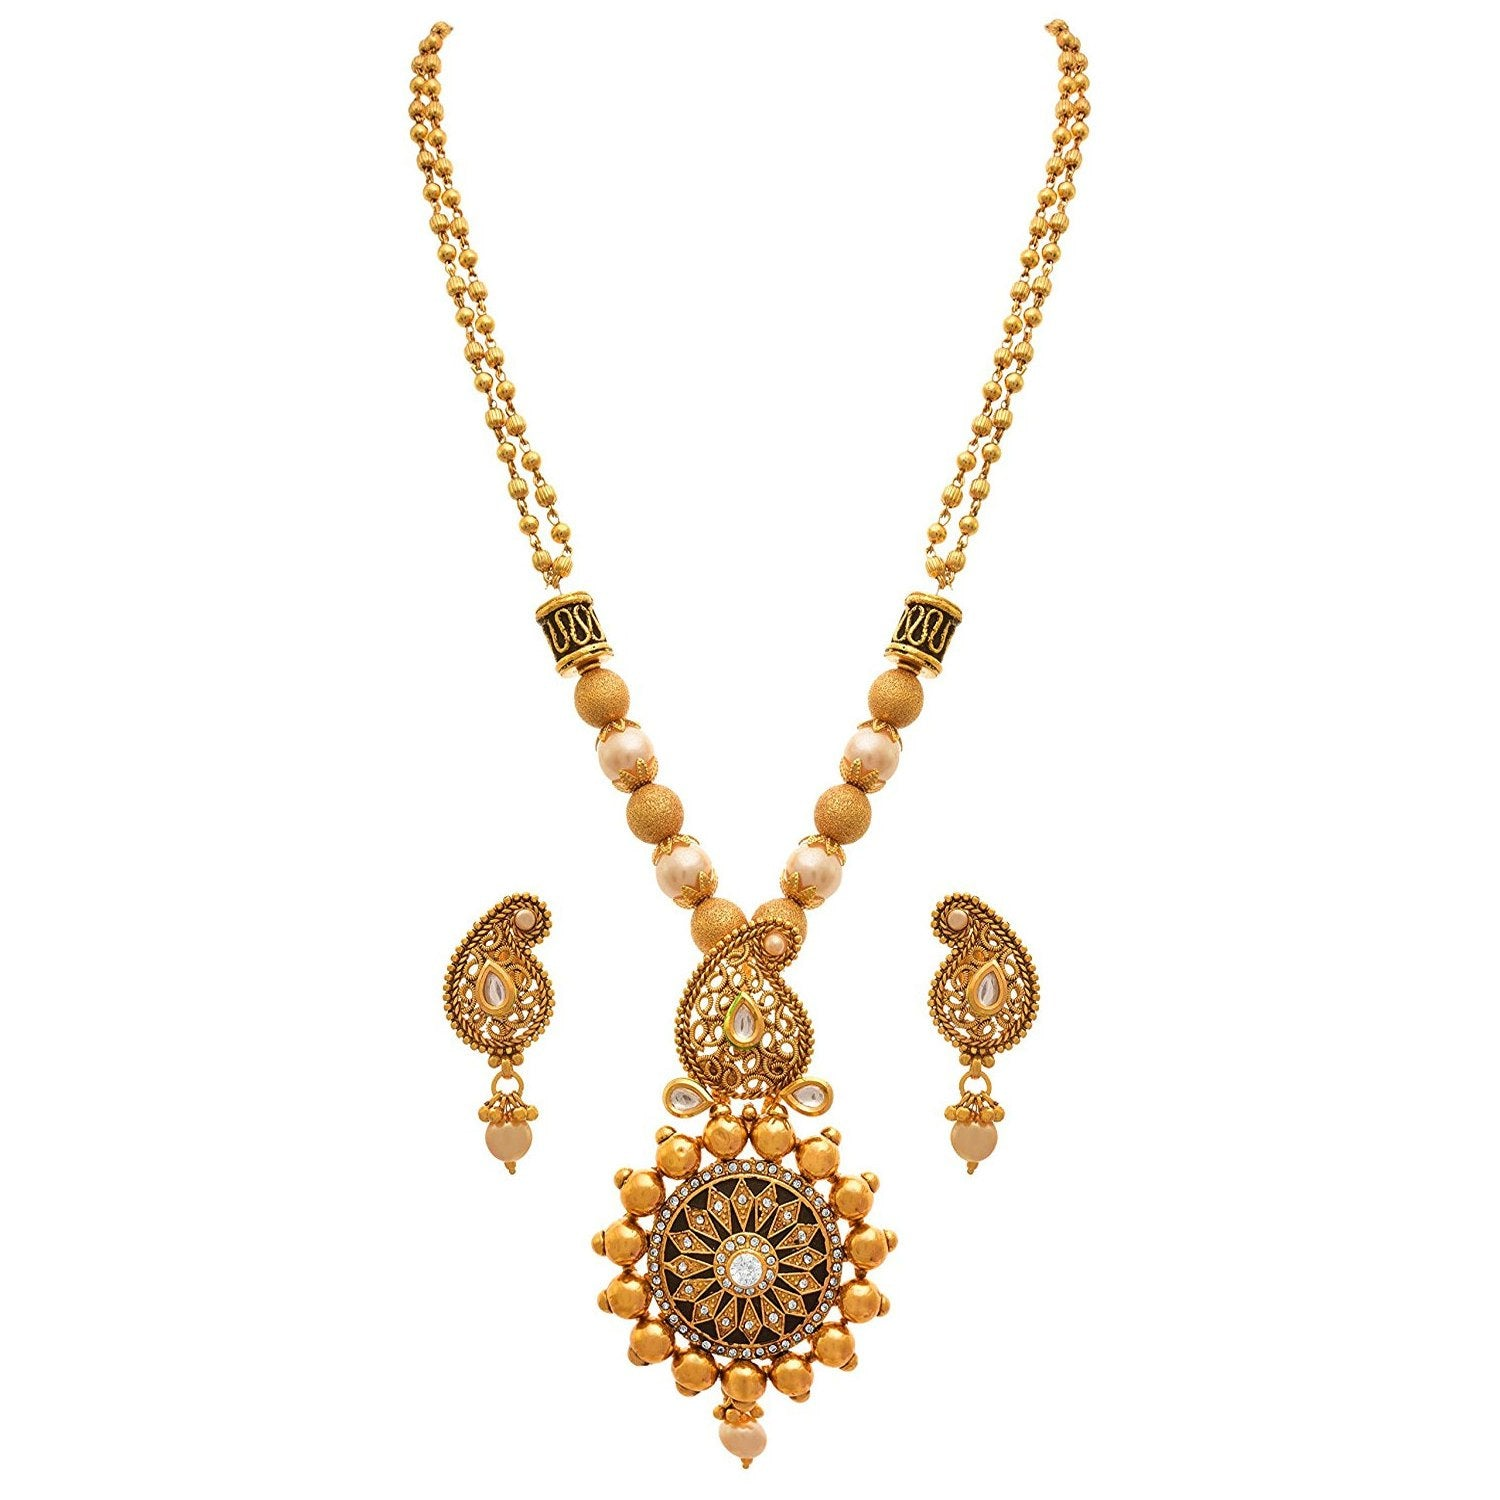 JFL - Traditional Ethnic One Gram Gold Plated Pearl Kundan Diamond Designer Necklace Set with Earring for Women and Girls.